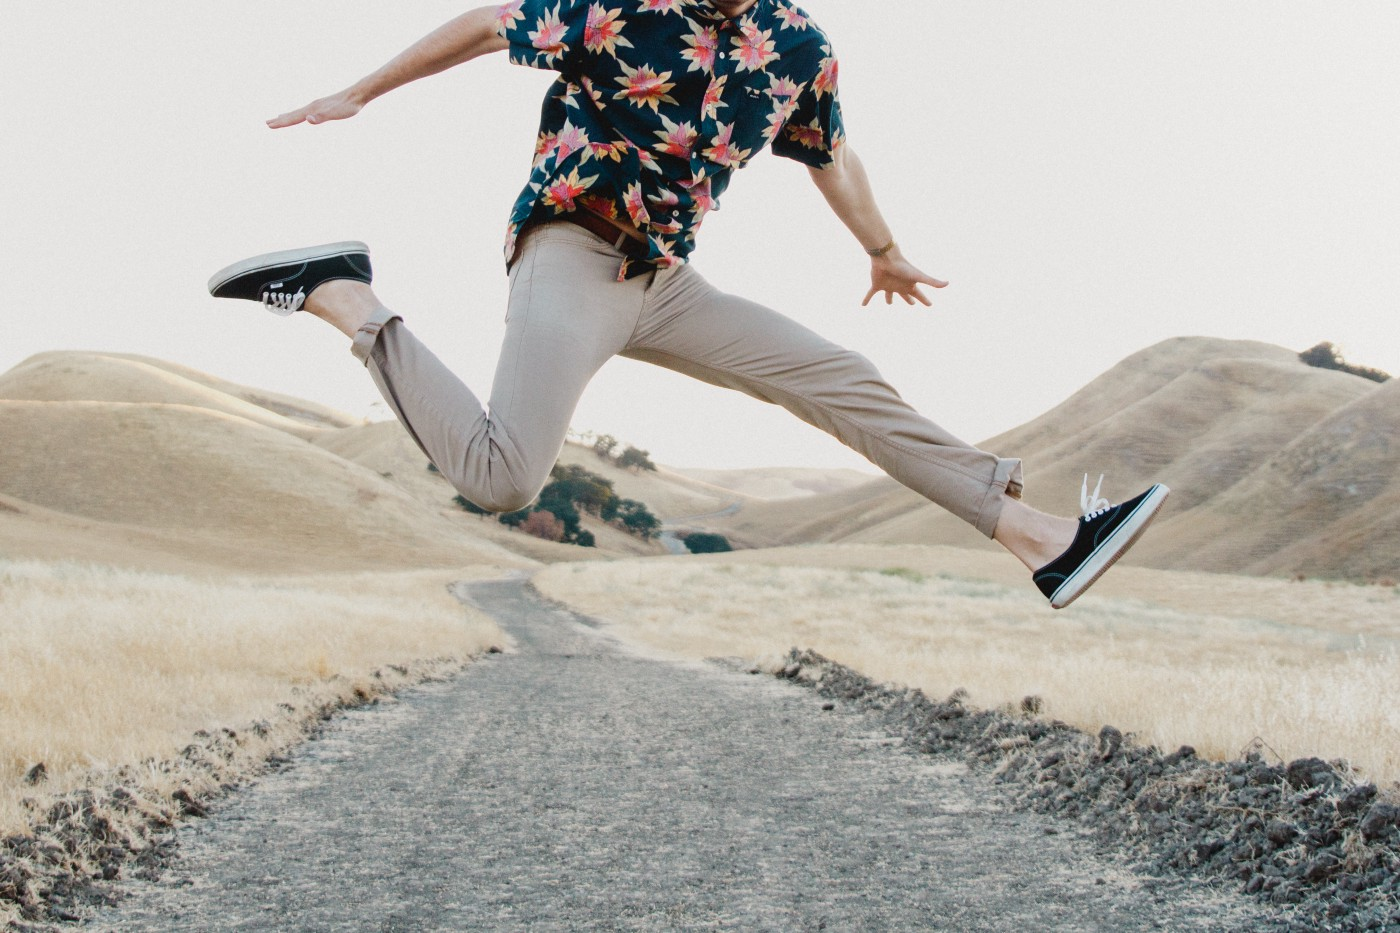 A person jumps in the middle of a road.